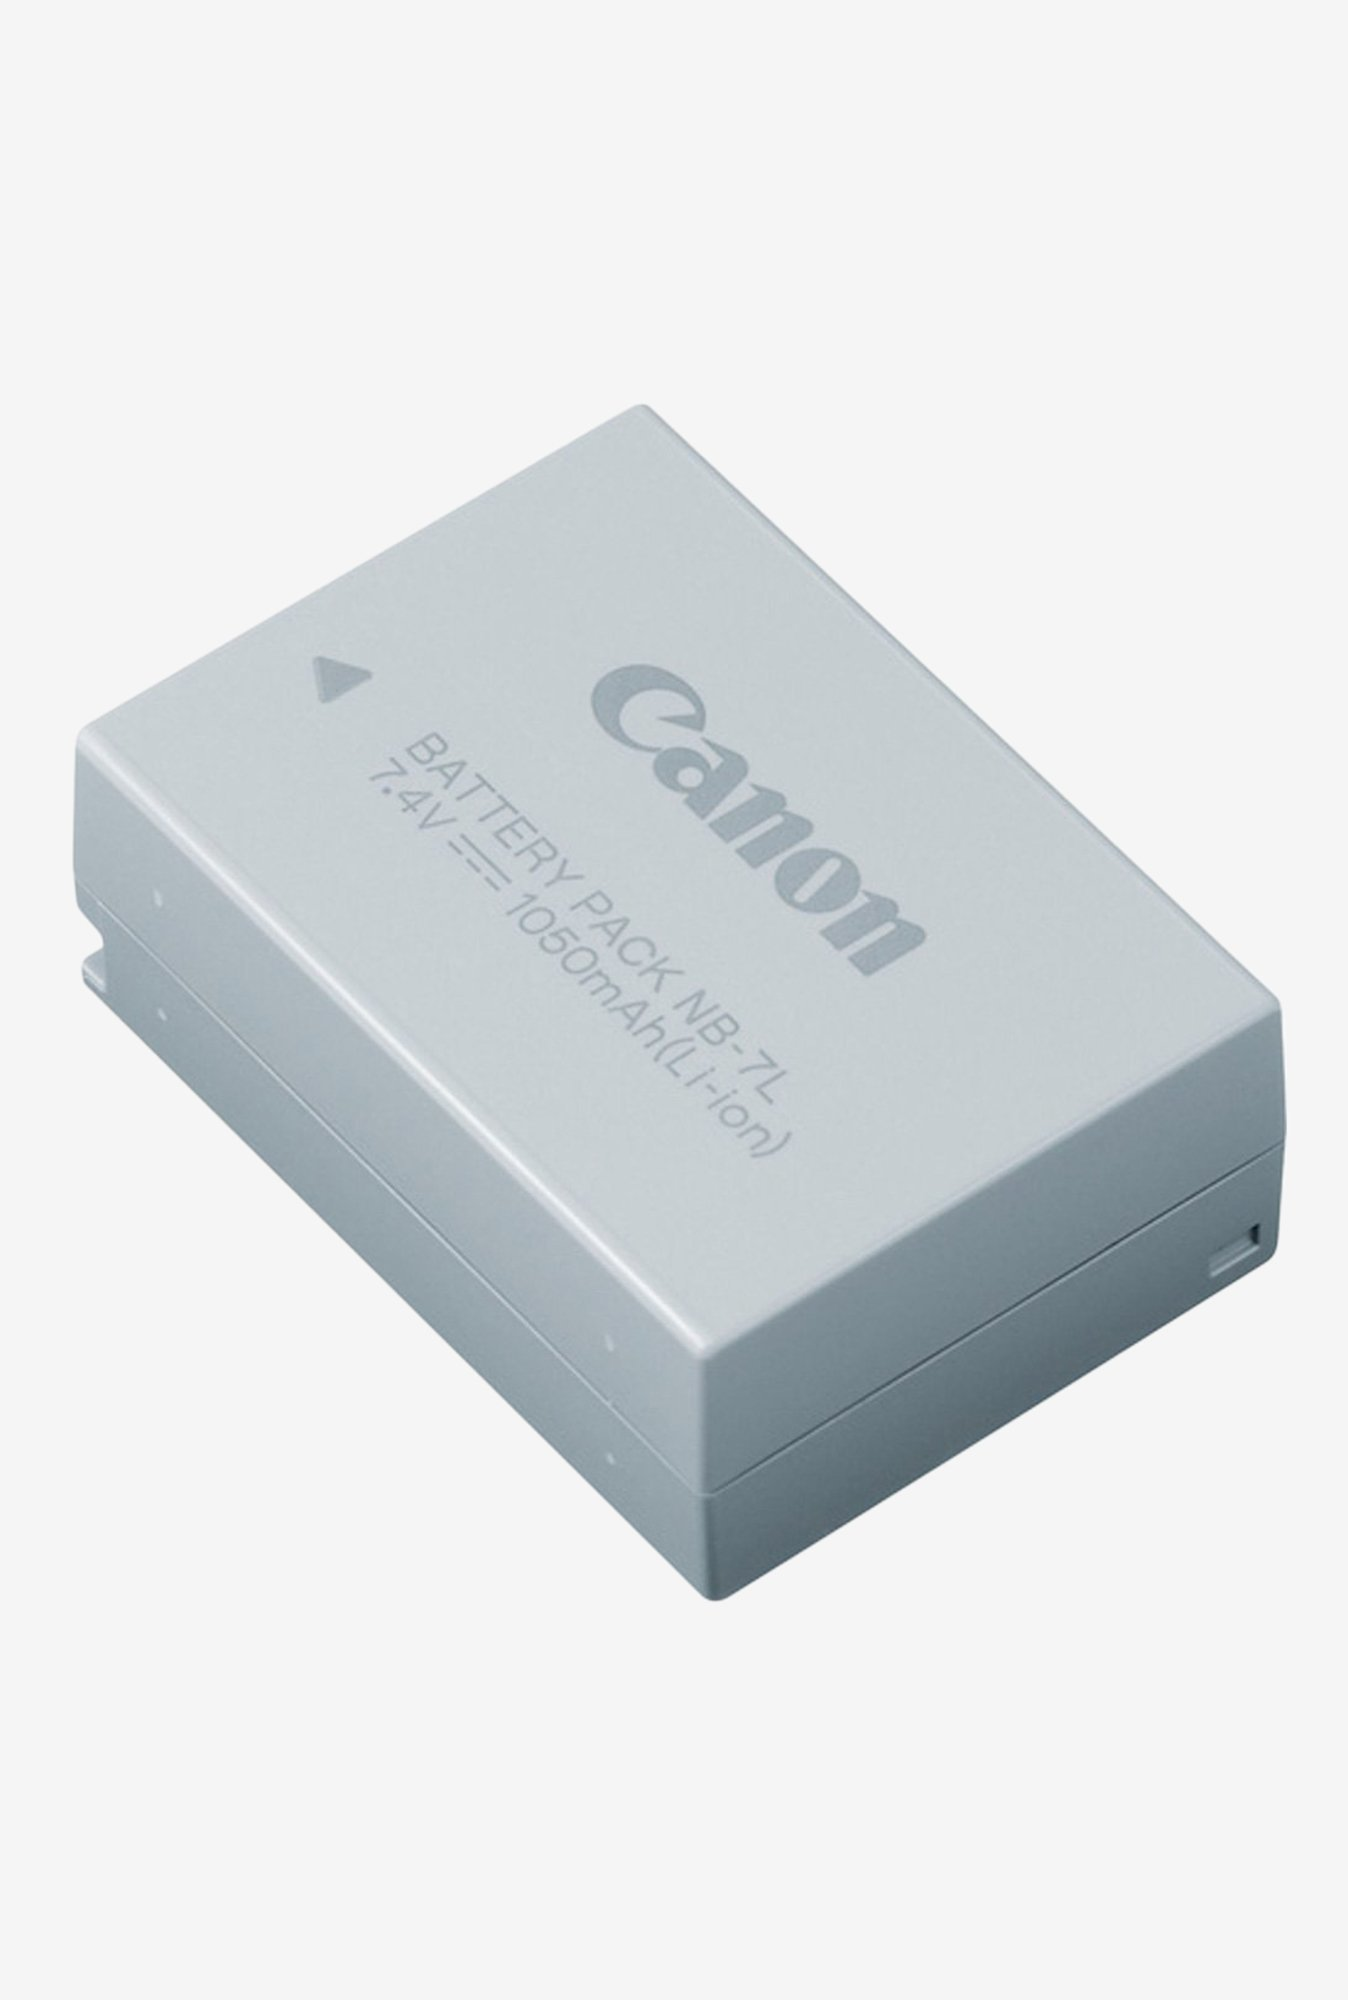 Canon Lithium-Ion NB-7L Battery White